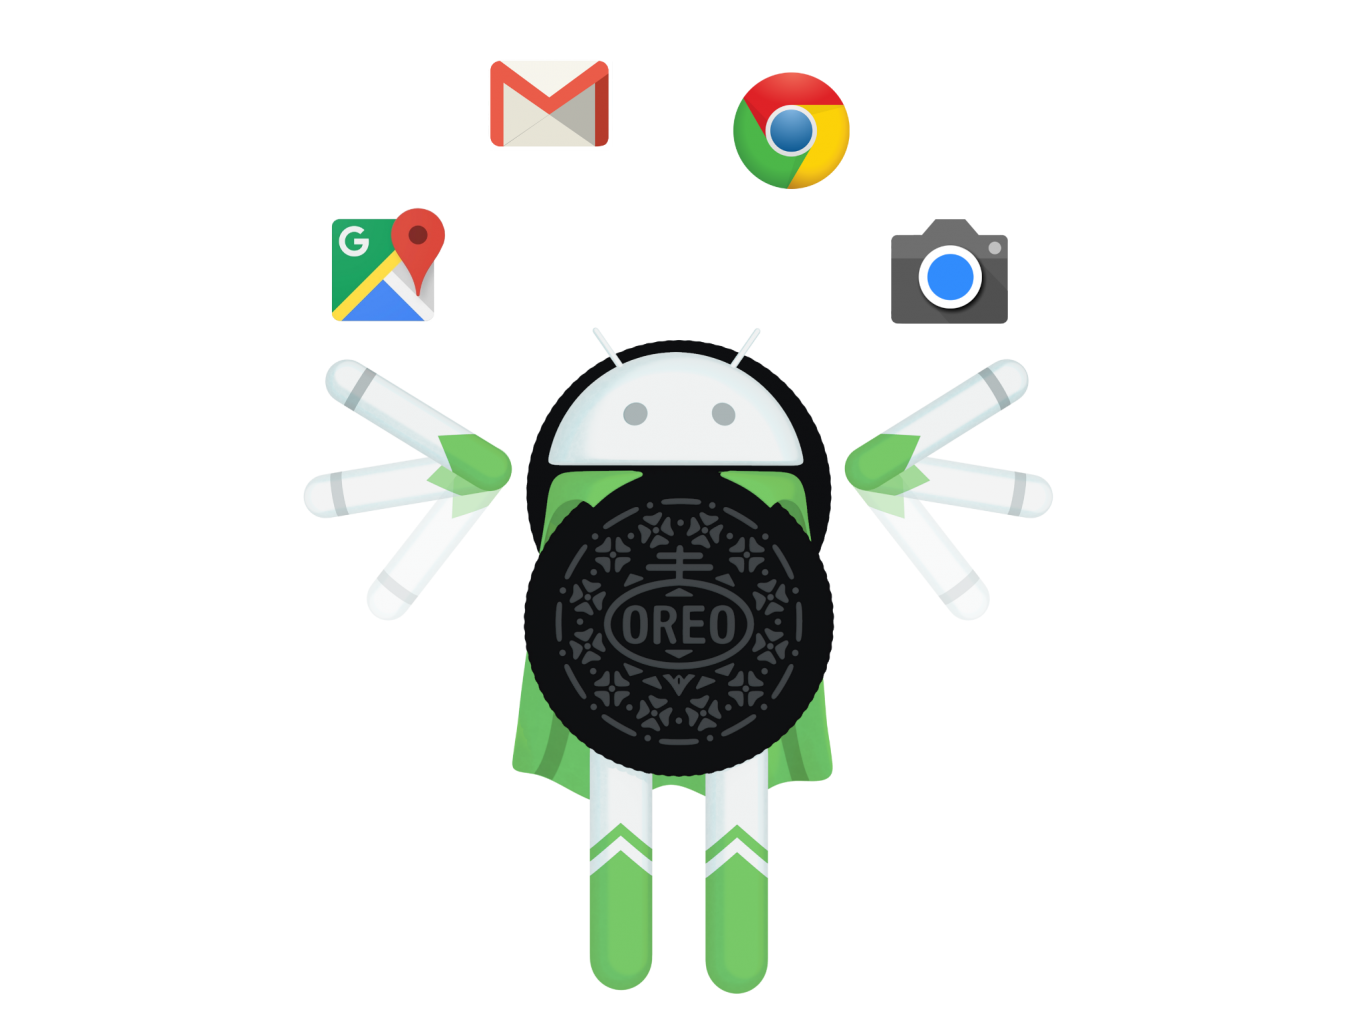 Android everything you need. Oreo clipart illustration